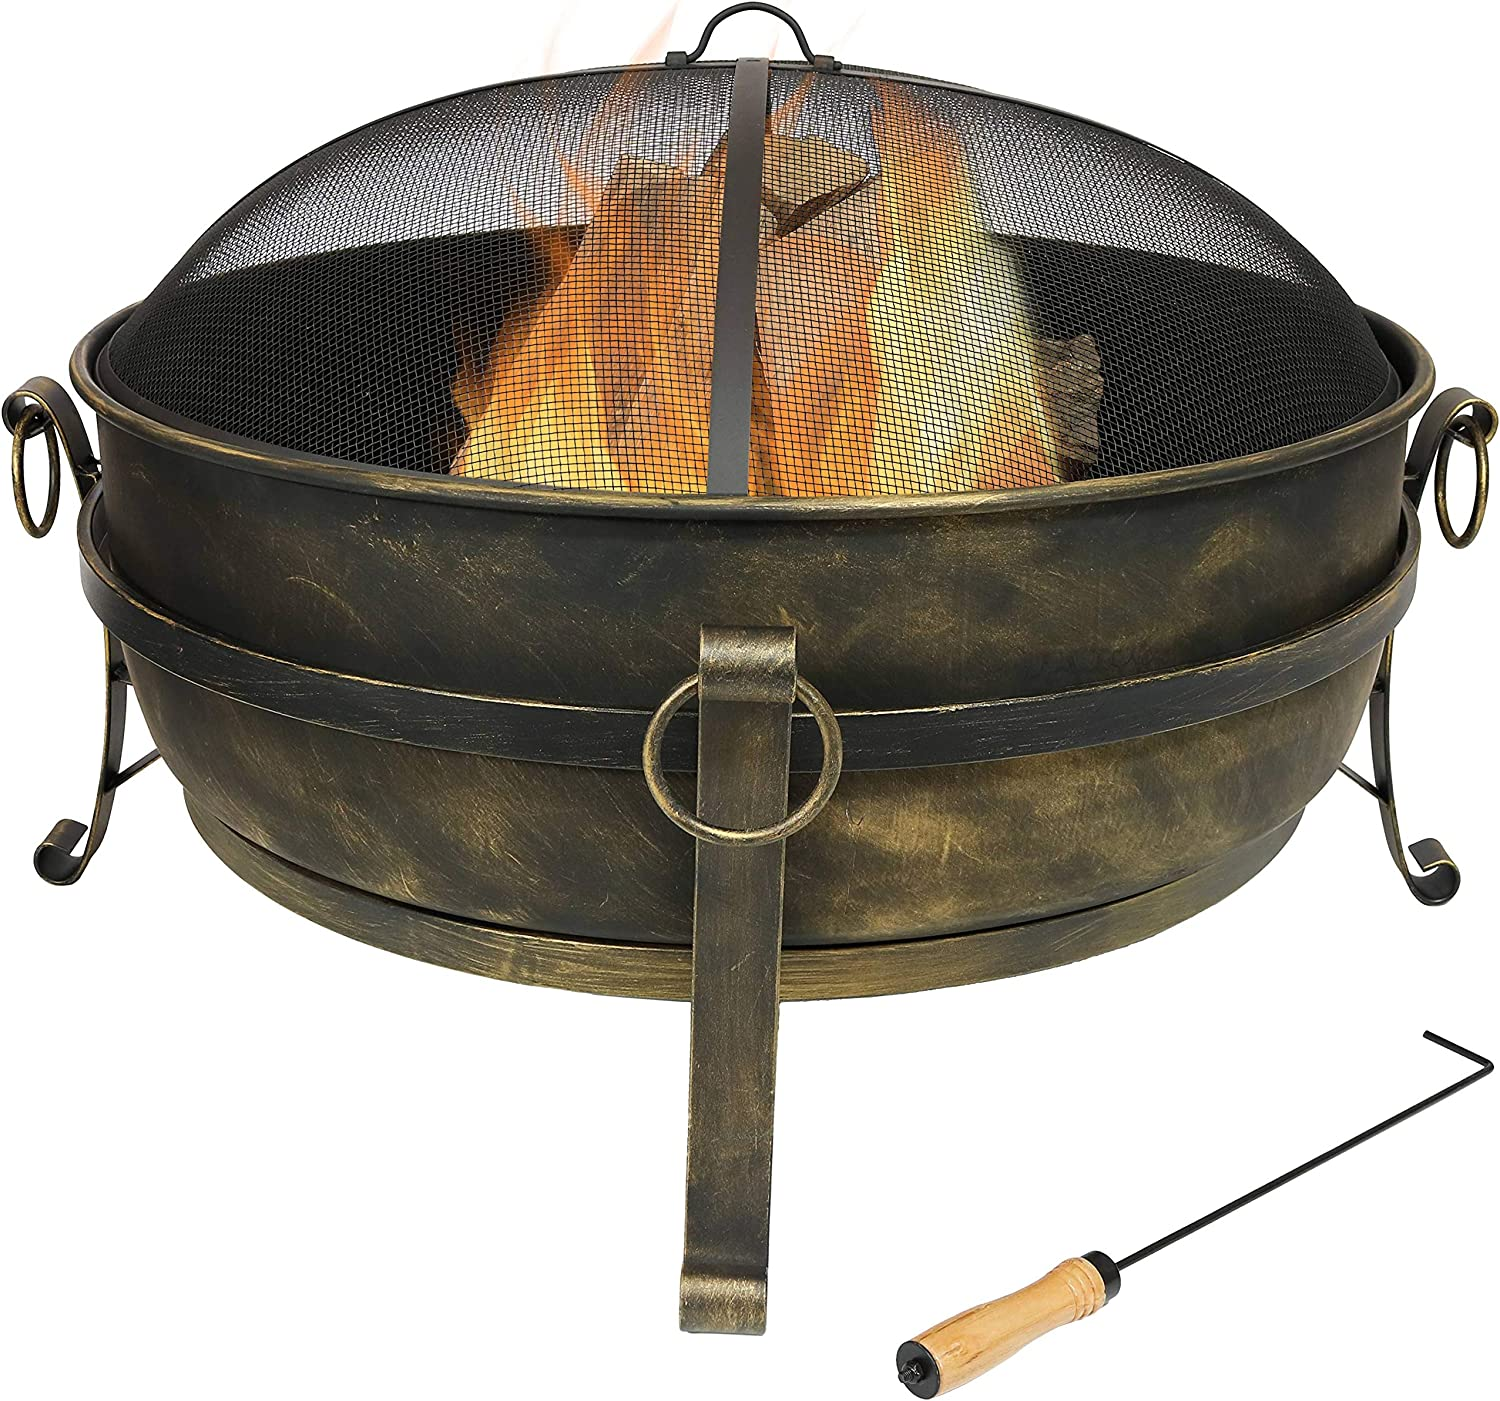 Sunnydaze Cauldron Outdoor Fire Pit   10 Inch Large Bonfire Wood Burning  Patio & Backyard Firepit for Outside with Round Spark Screen, Fireplace ...